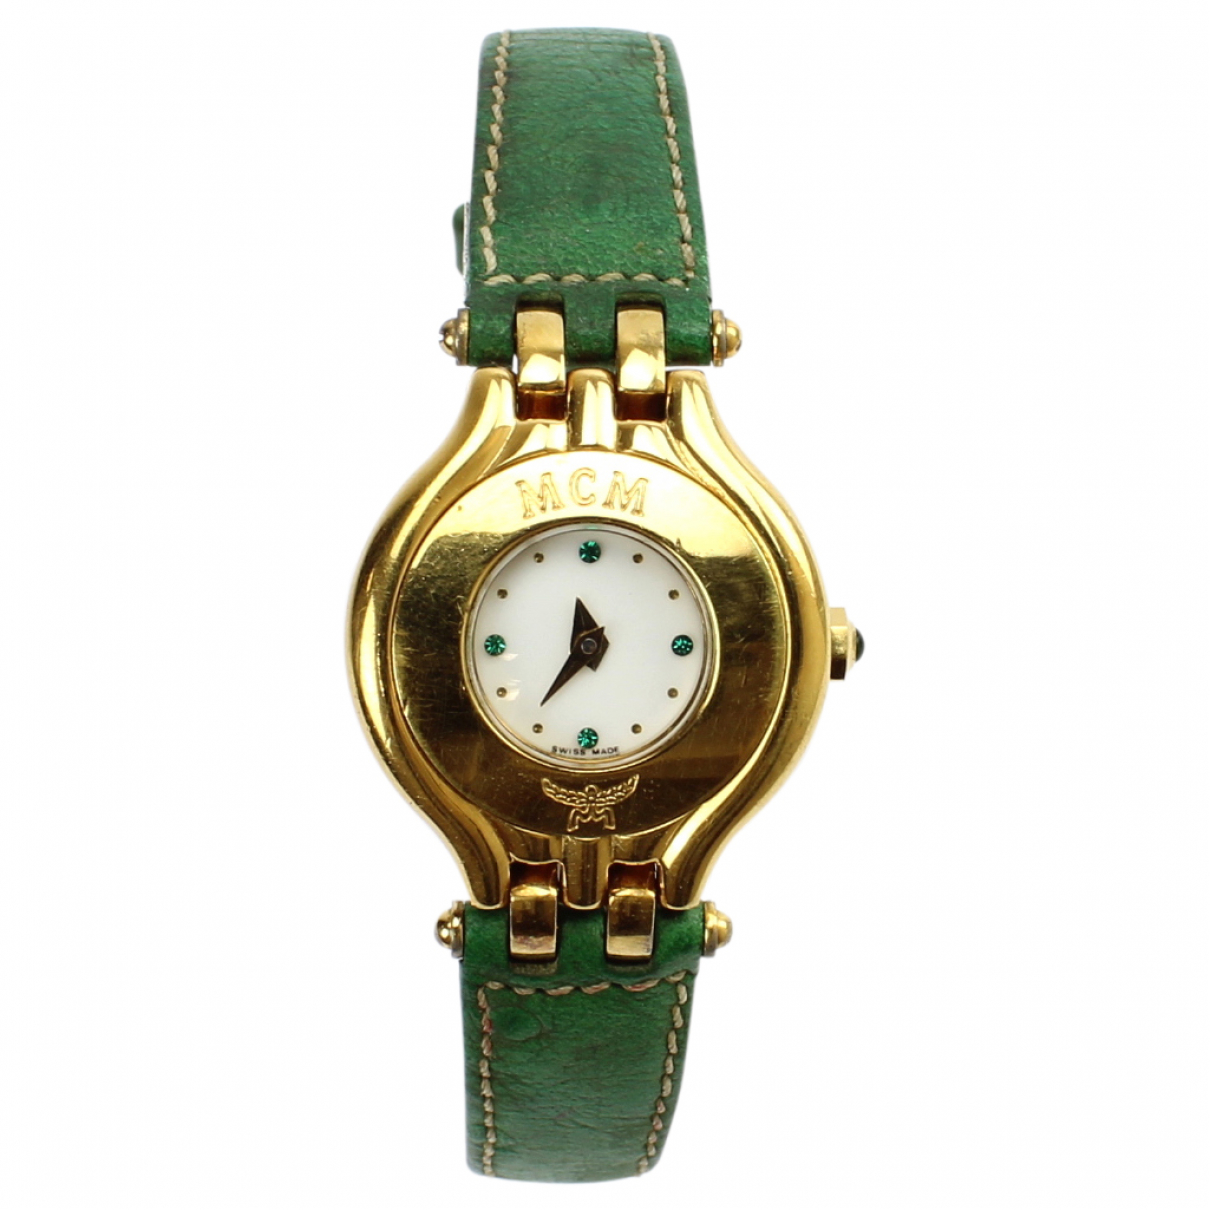 Mcm \N White Gold plated watch for Women \N